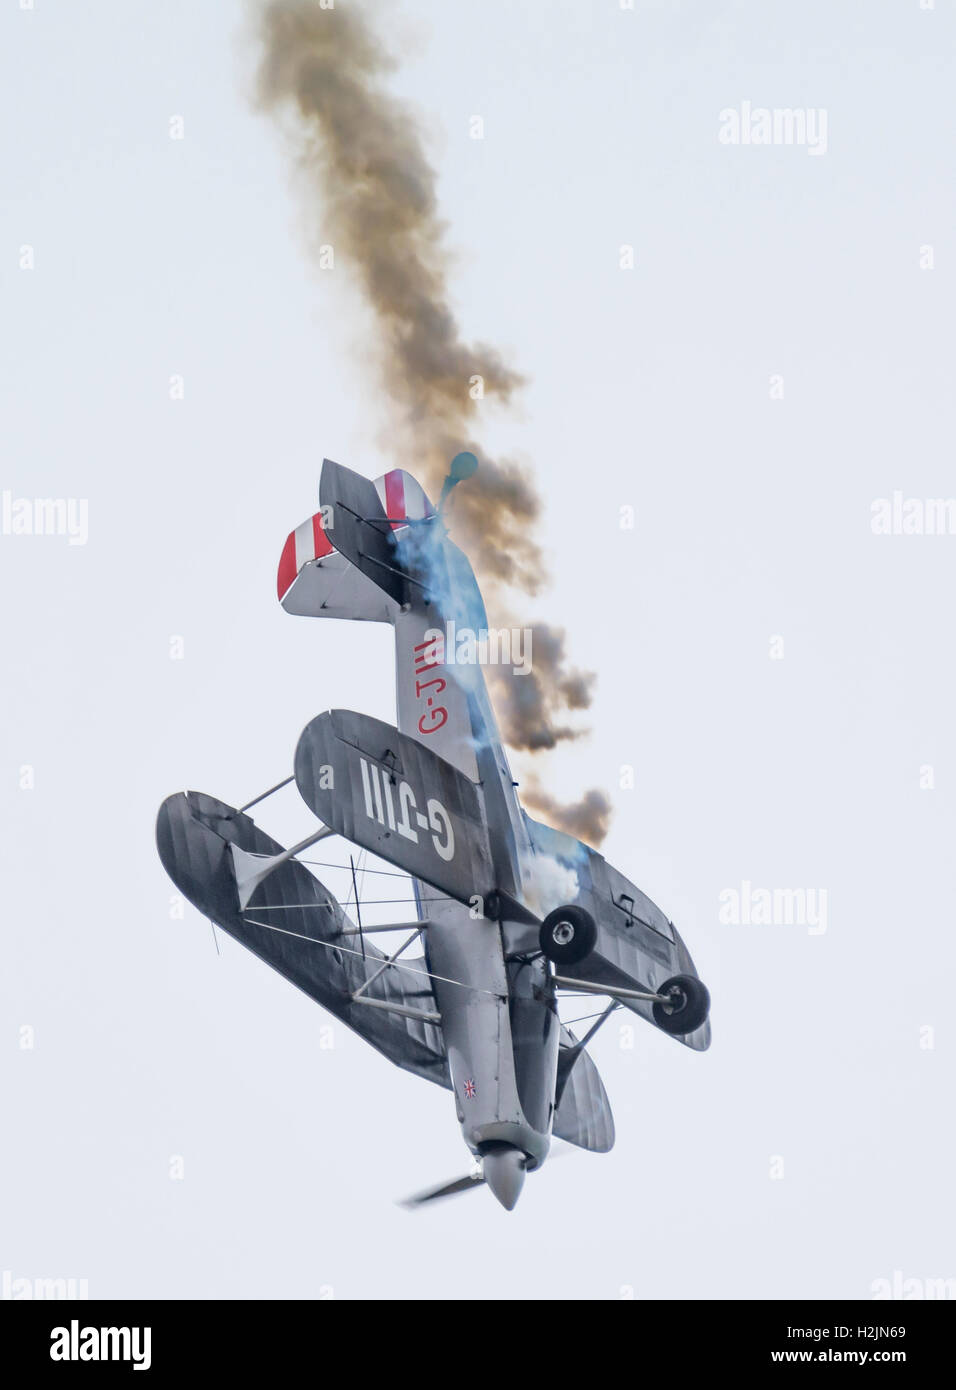 Biplane diving towards the ground with smoke coming from it. See description for more information. - Stock Image